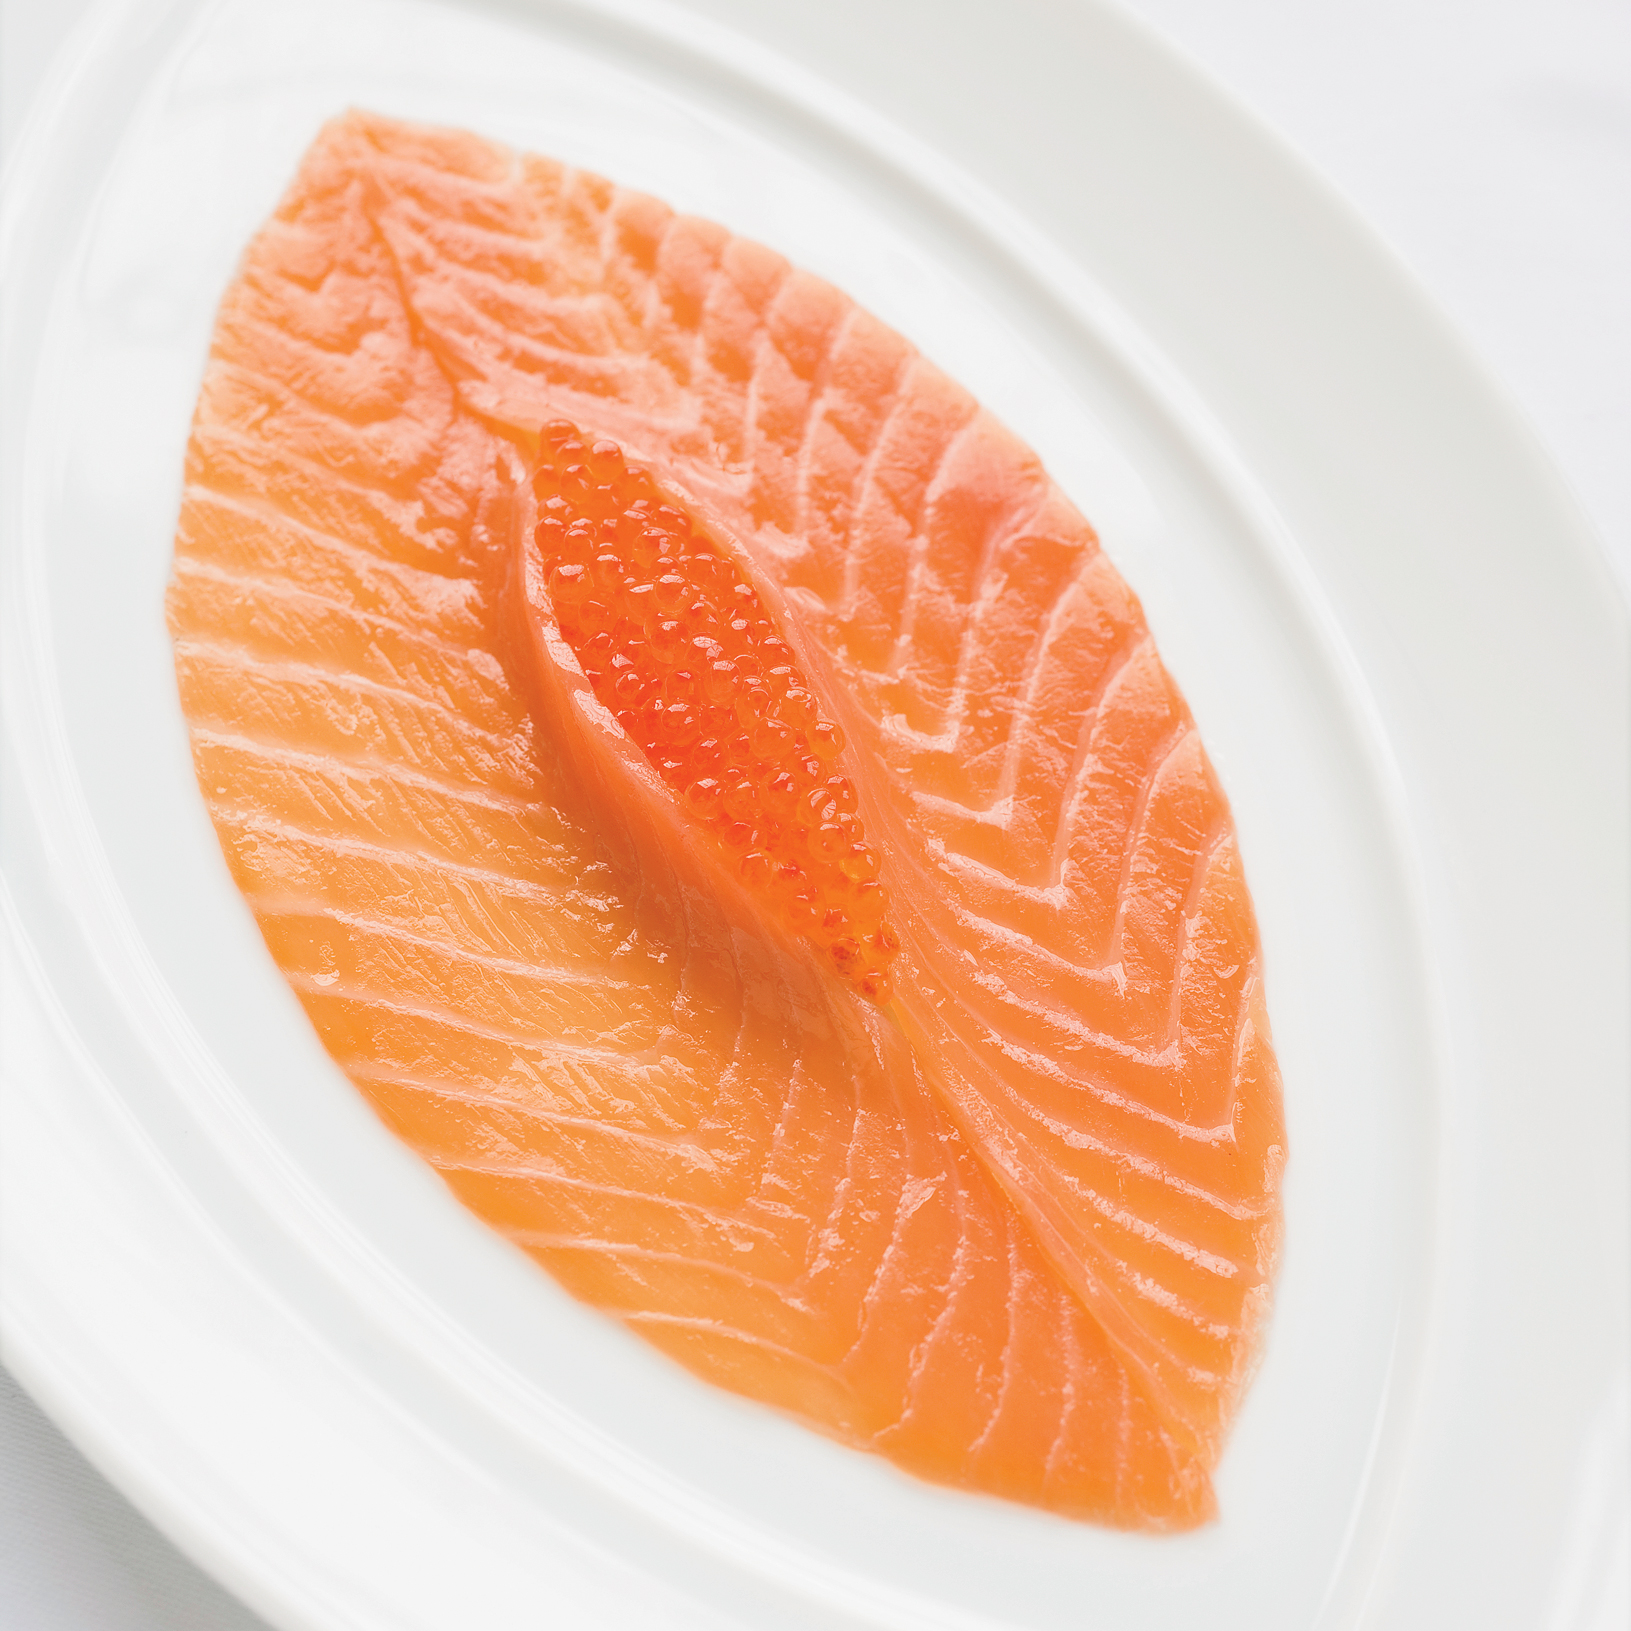 201001-r-smoked-salmon-carpaccio.jpg